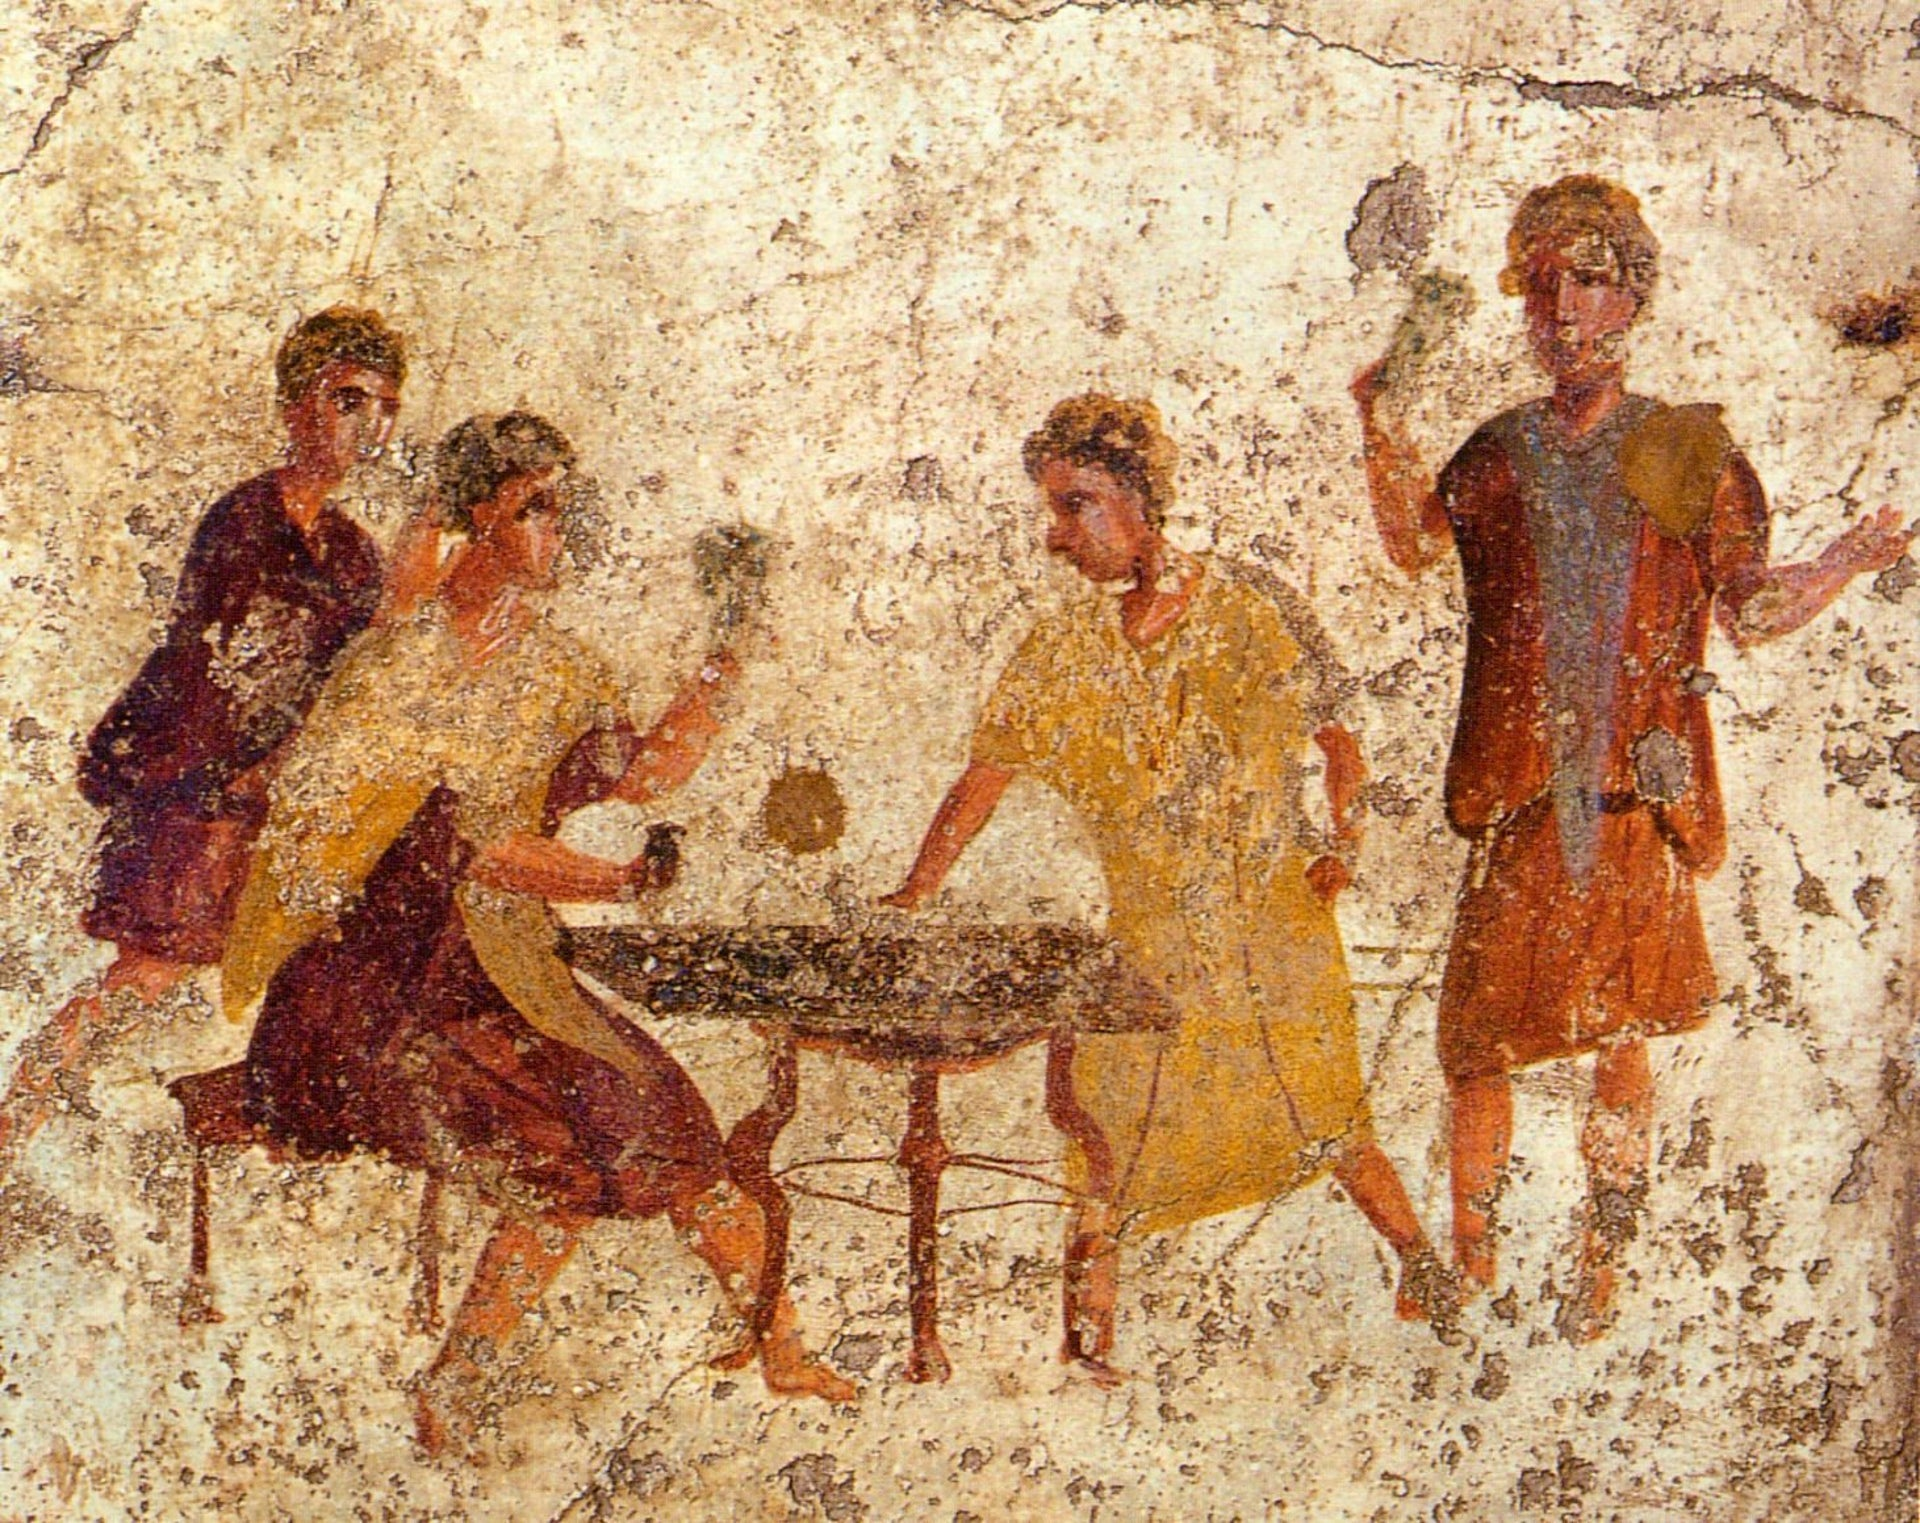 Gaming in ancient Pompeii: Ancient and rather tatty fresco shows four men, all seemingly wearing laurel leaves on their heads, playing a board game. Two of the men are garbed in dark red robes, one in a gold-colored robe and one in a dark orange robe. They seem to be barefoot.